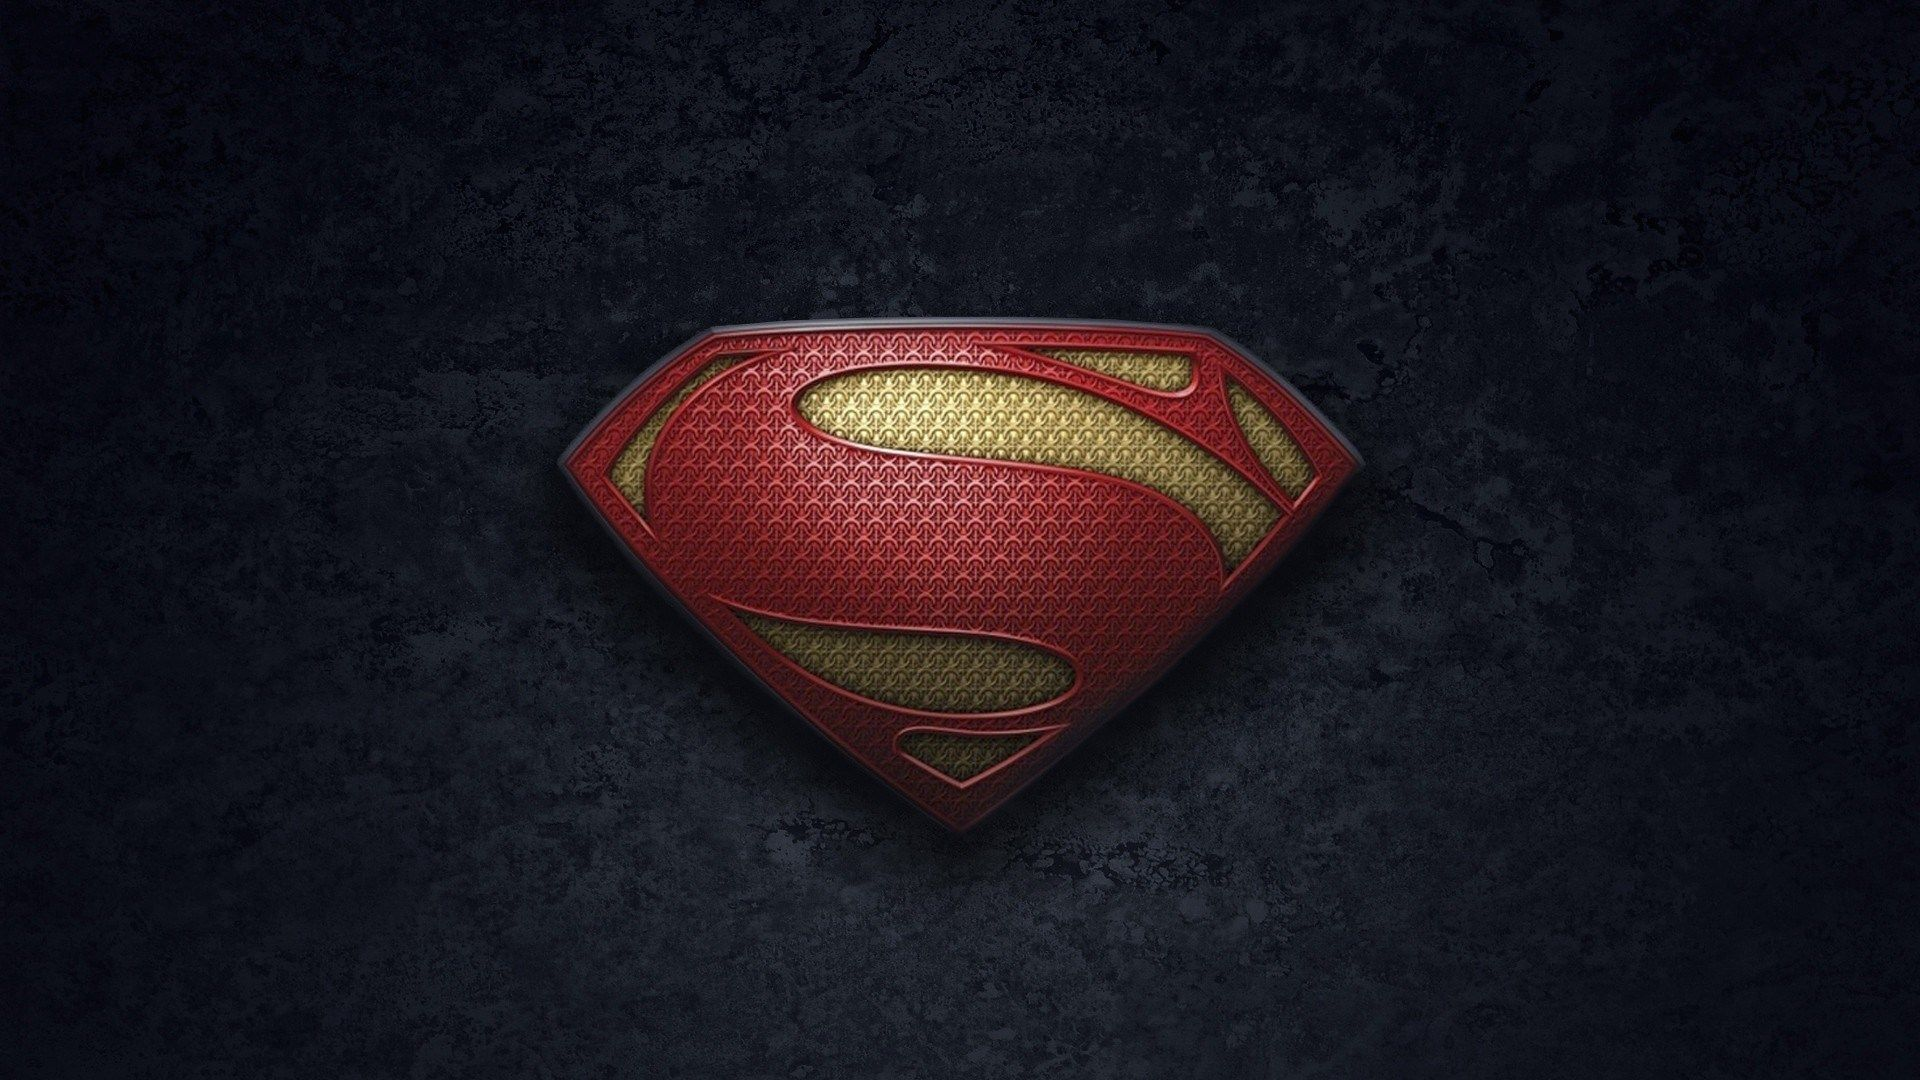 Superman Logo HD Wallpapers P 1900x1020 Wallpaper 53